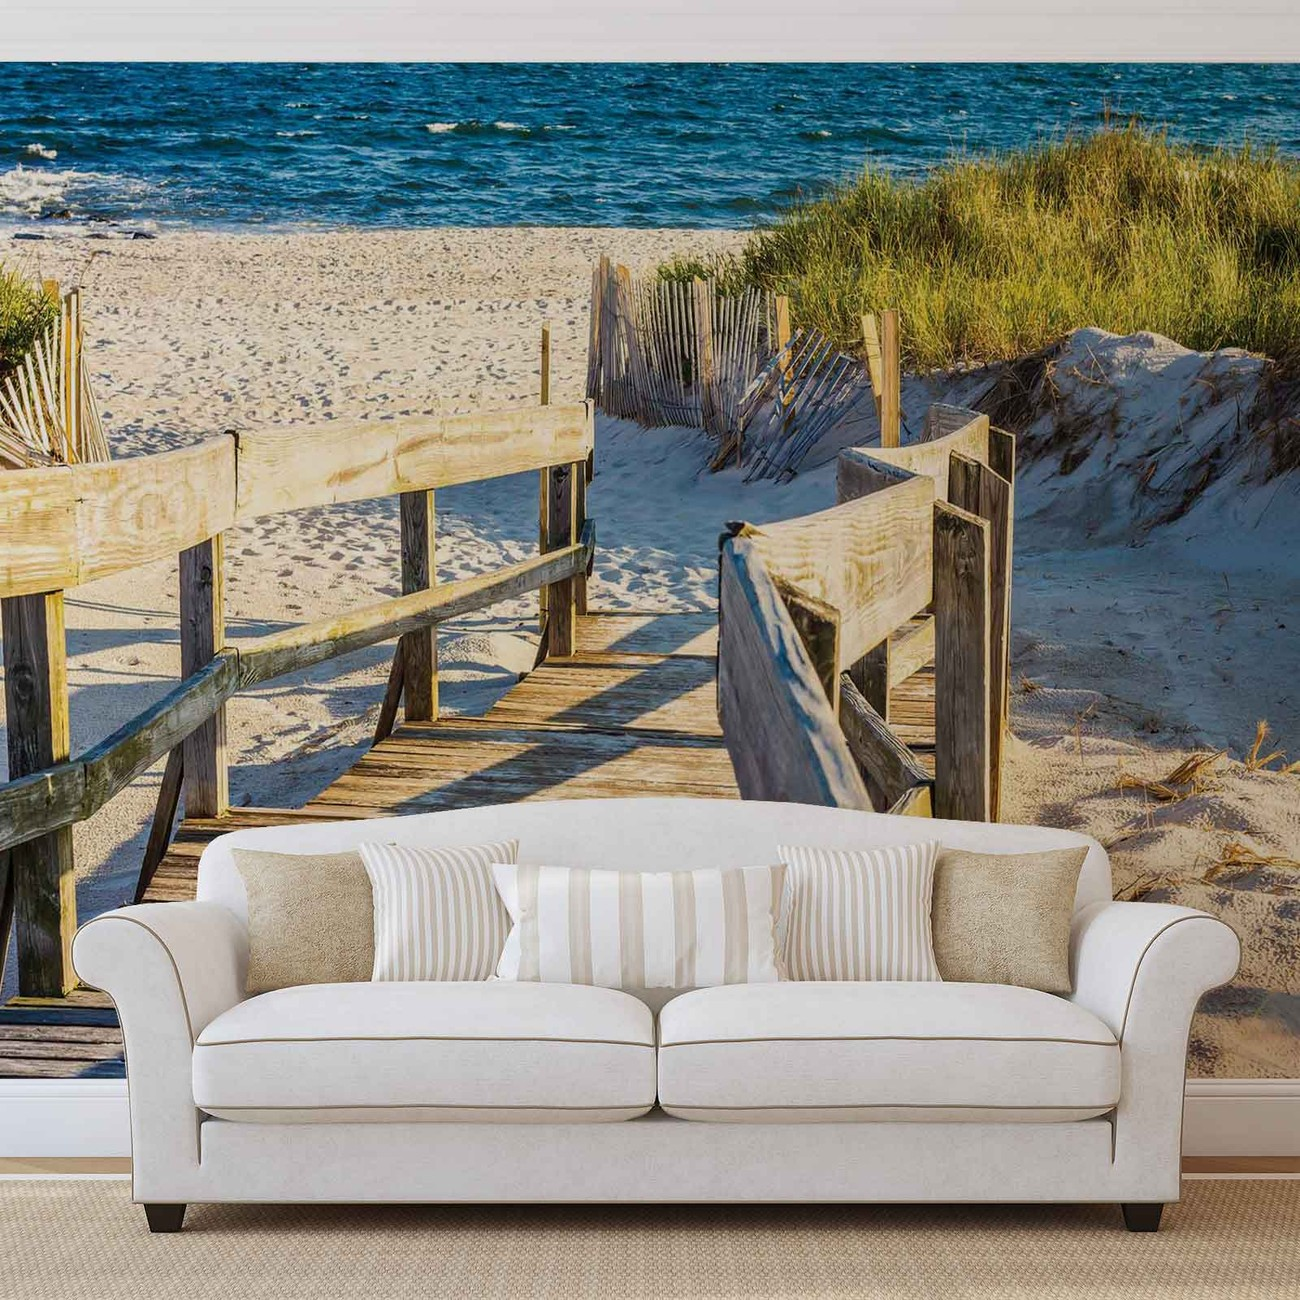 Beach tropical view wall paper mural buy at europosters for Alabama wall mural